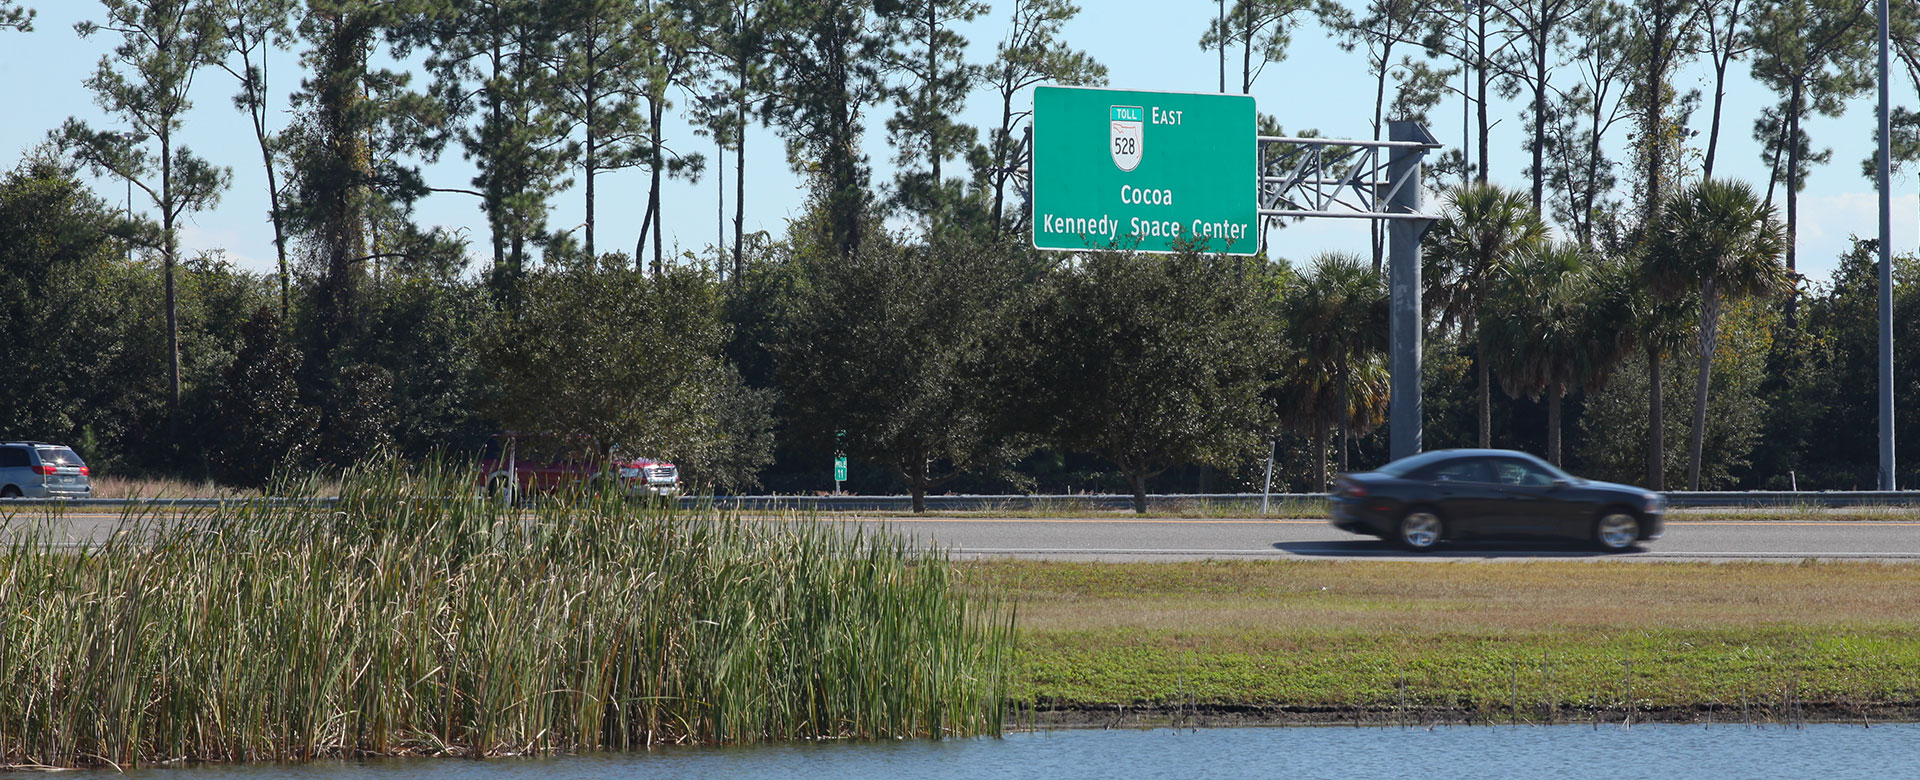 Central Florida Expressway road sign for toll road 528 East to Cocoa Beach Kennedy Space Center